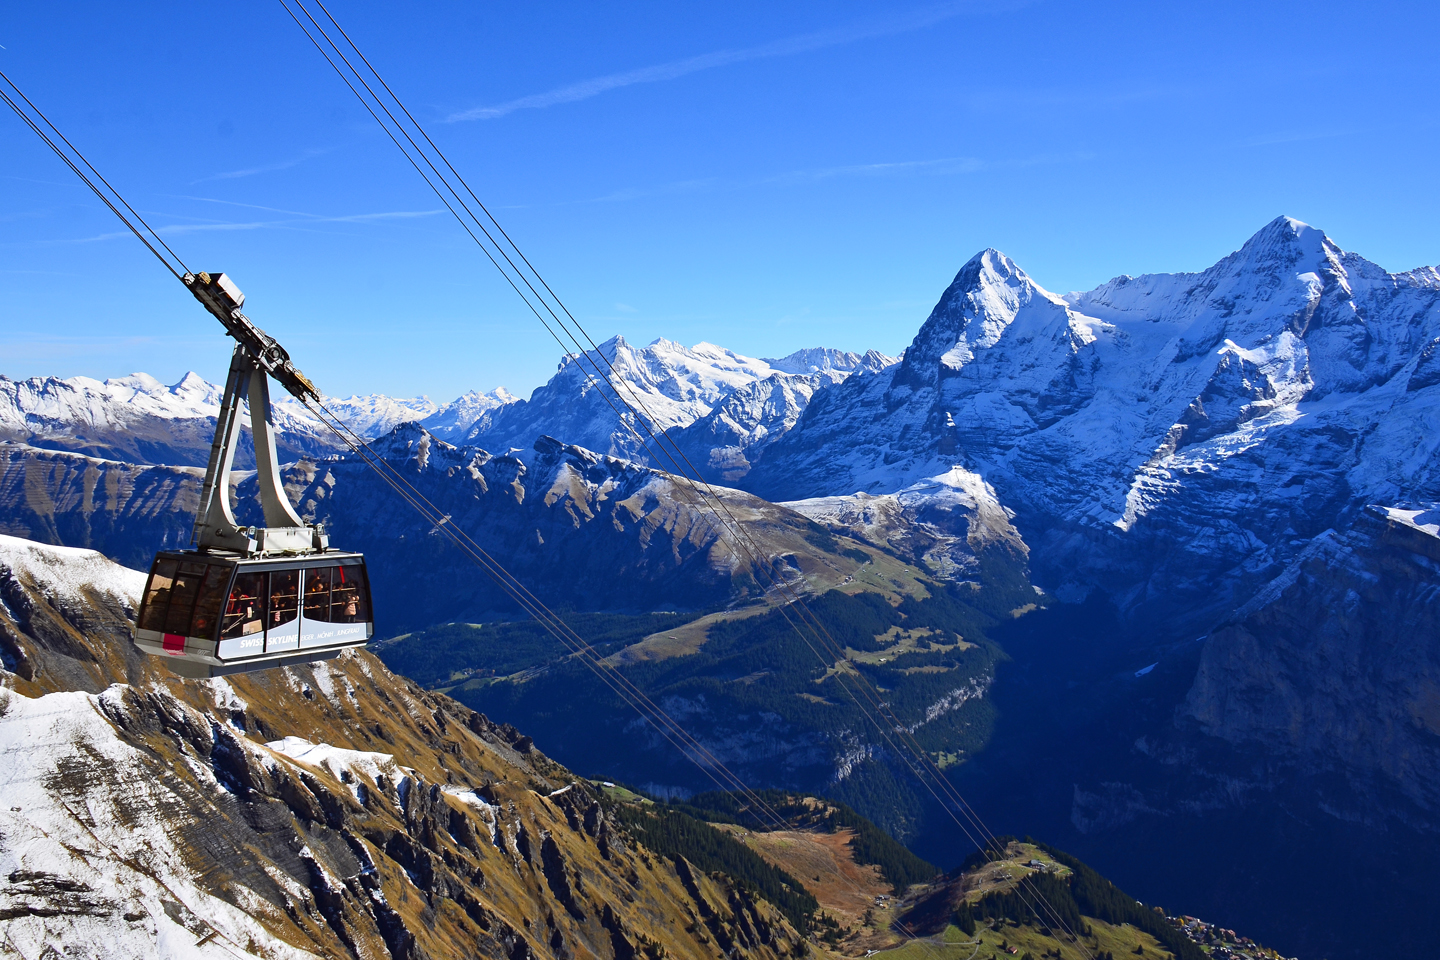 Schilthorn cable car with mountains